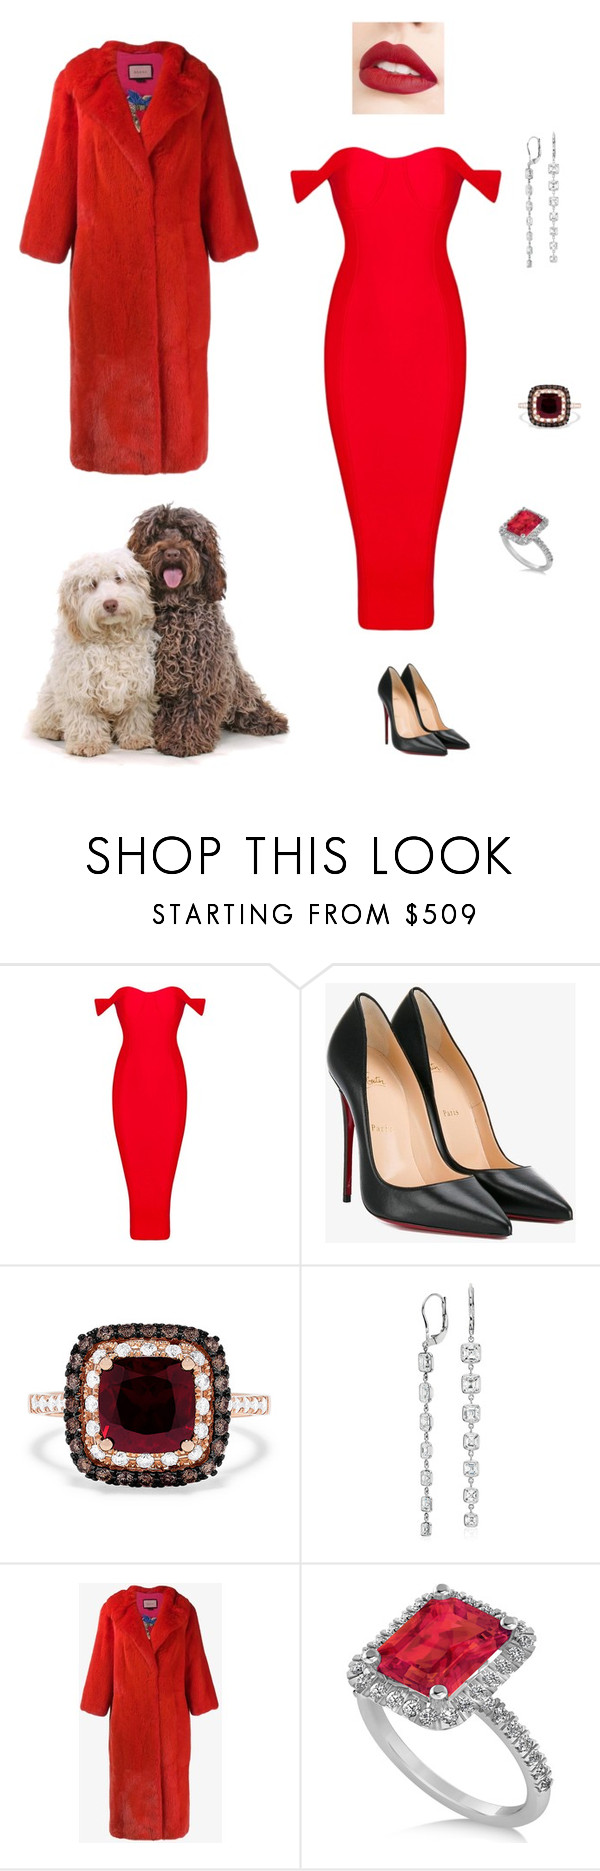 """""""Red"""" by karen-style ❤ liked on Polyvore featuring Christian Louboutin, Effy Jewelry, Blue Nile, Gucci, Allurez, Jouer and blinddate"""